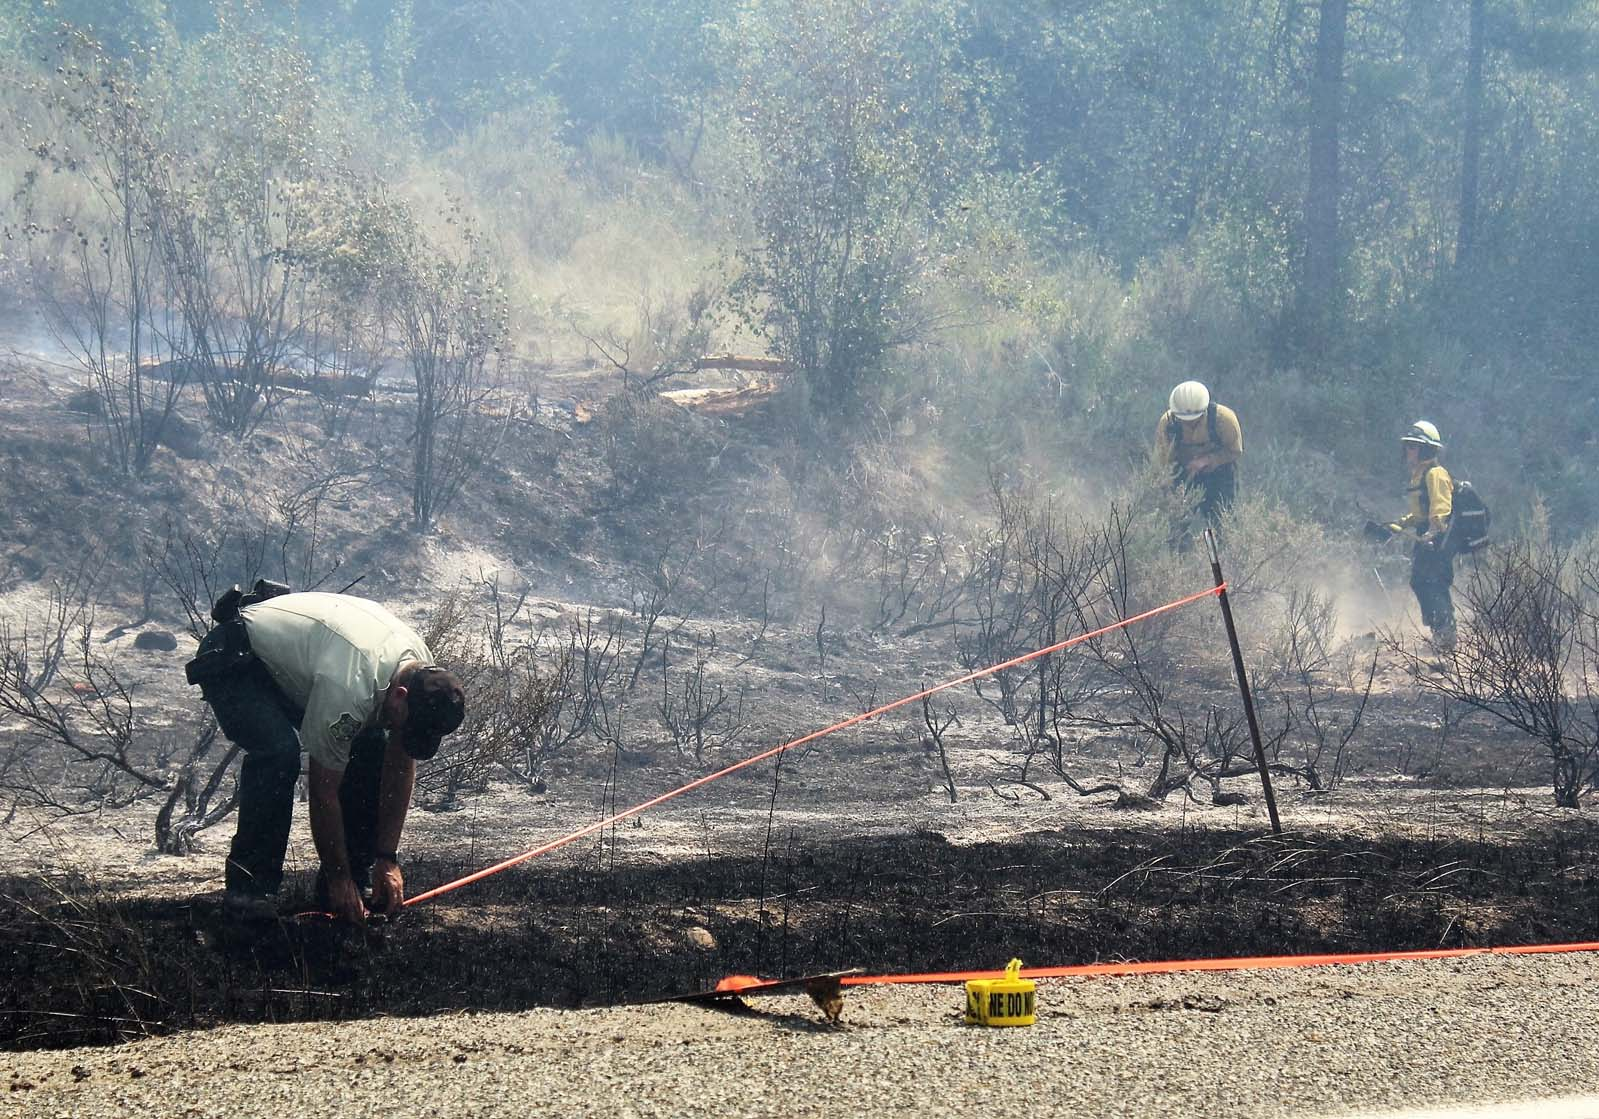 A Forest Service investigator adds more fire scene tape to the suspected ignition area.